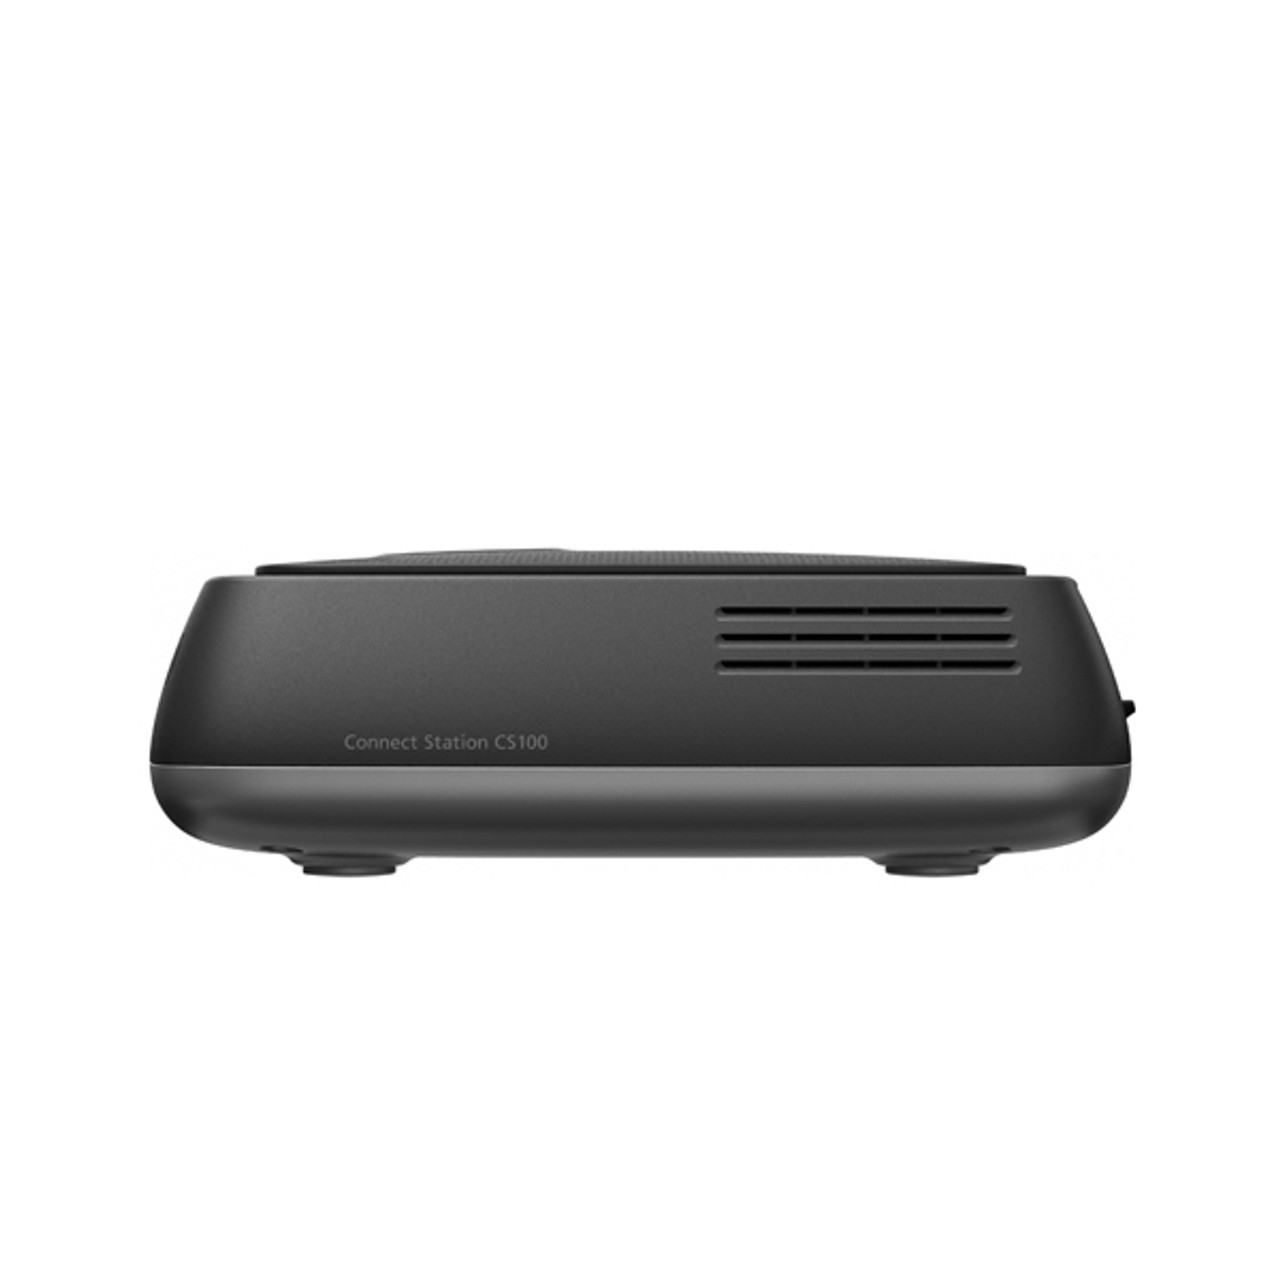 Canon CS100 Connect Station 1TB Storage Device